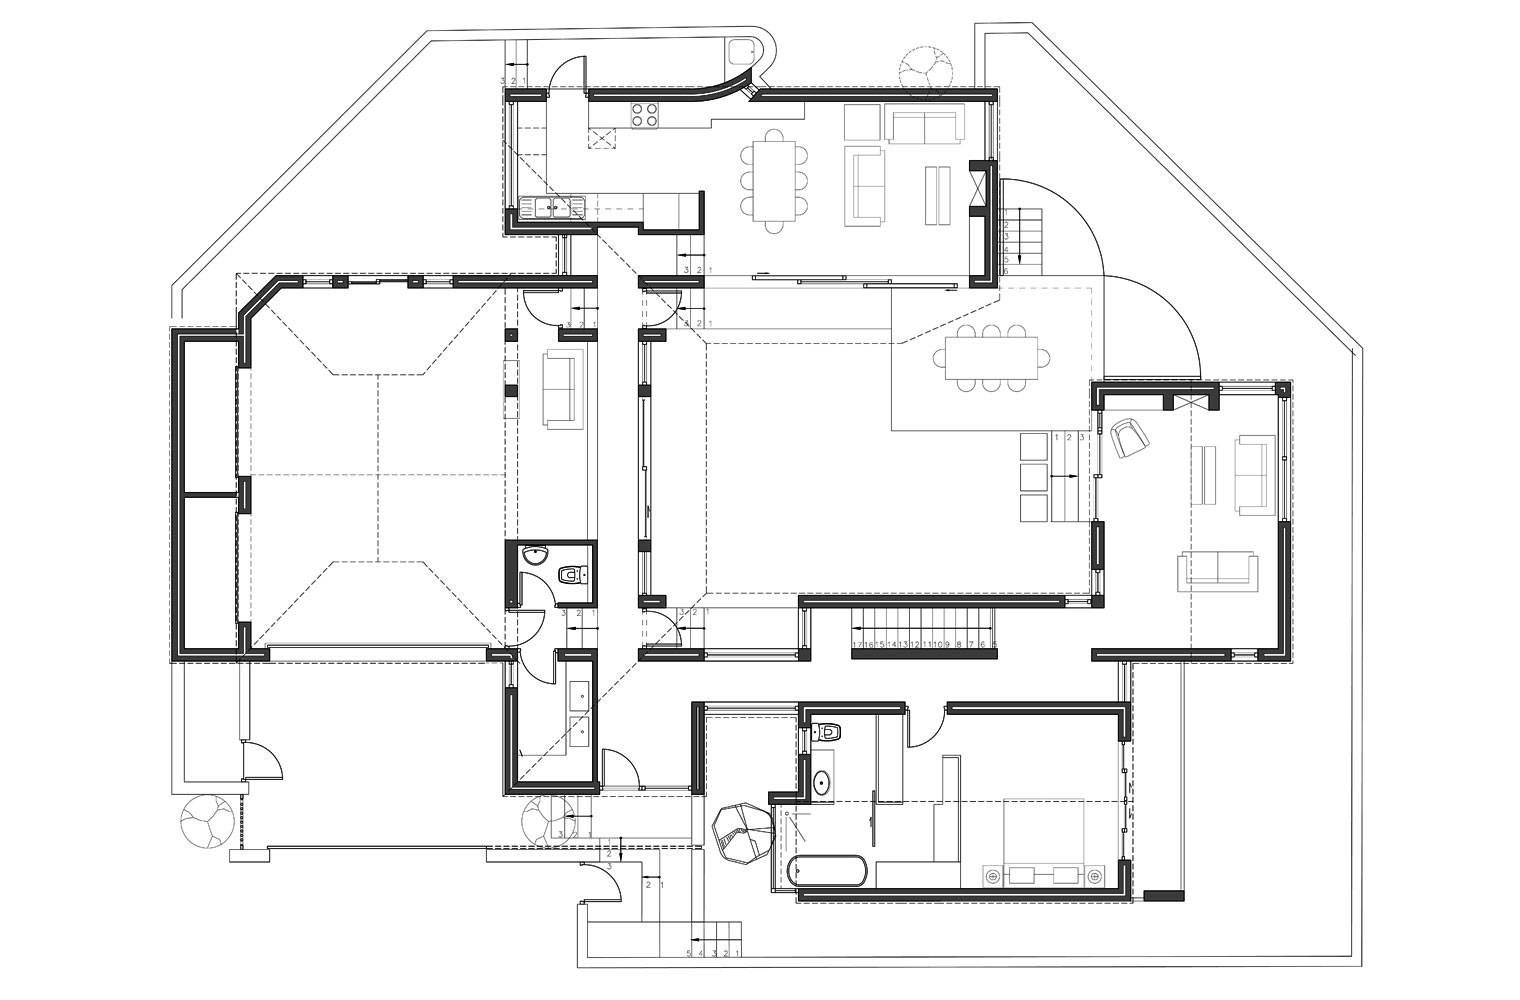 House Aucamp, Oosthuizen - Ground Floor Plan